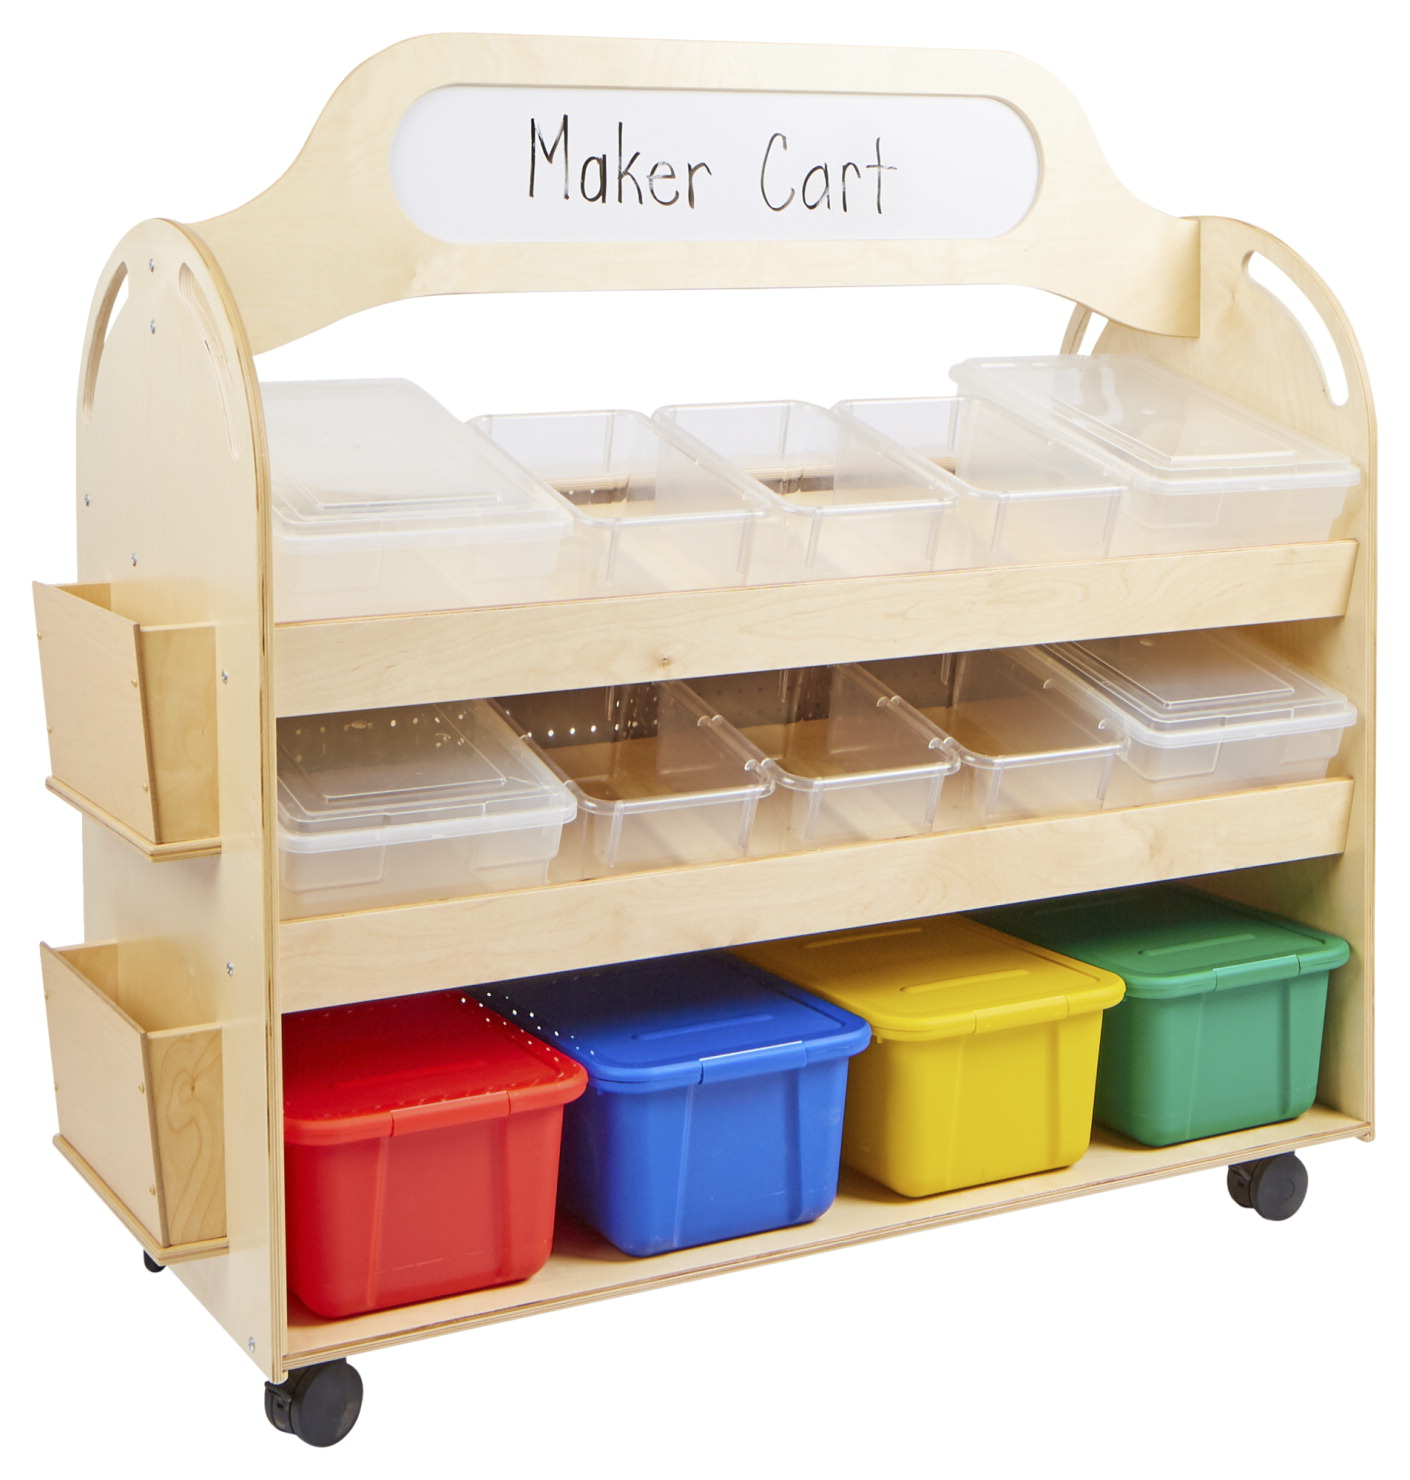 Childcraft Mobile Makerspace Cart, Clear and Assorted Trays, 48-1/4 x 22-1/2 x 49 Inches